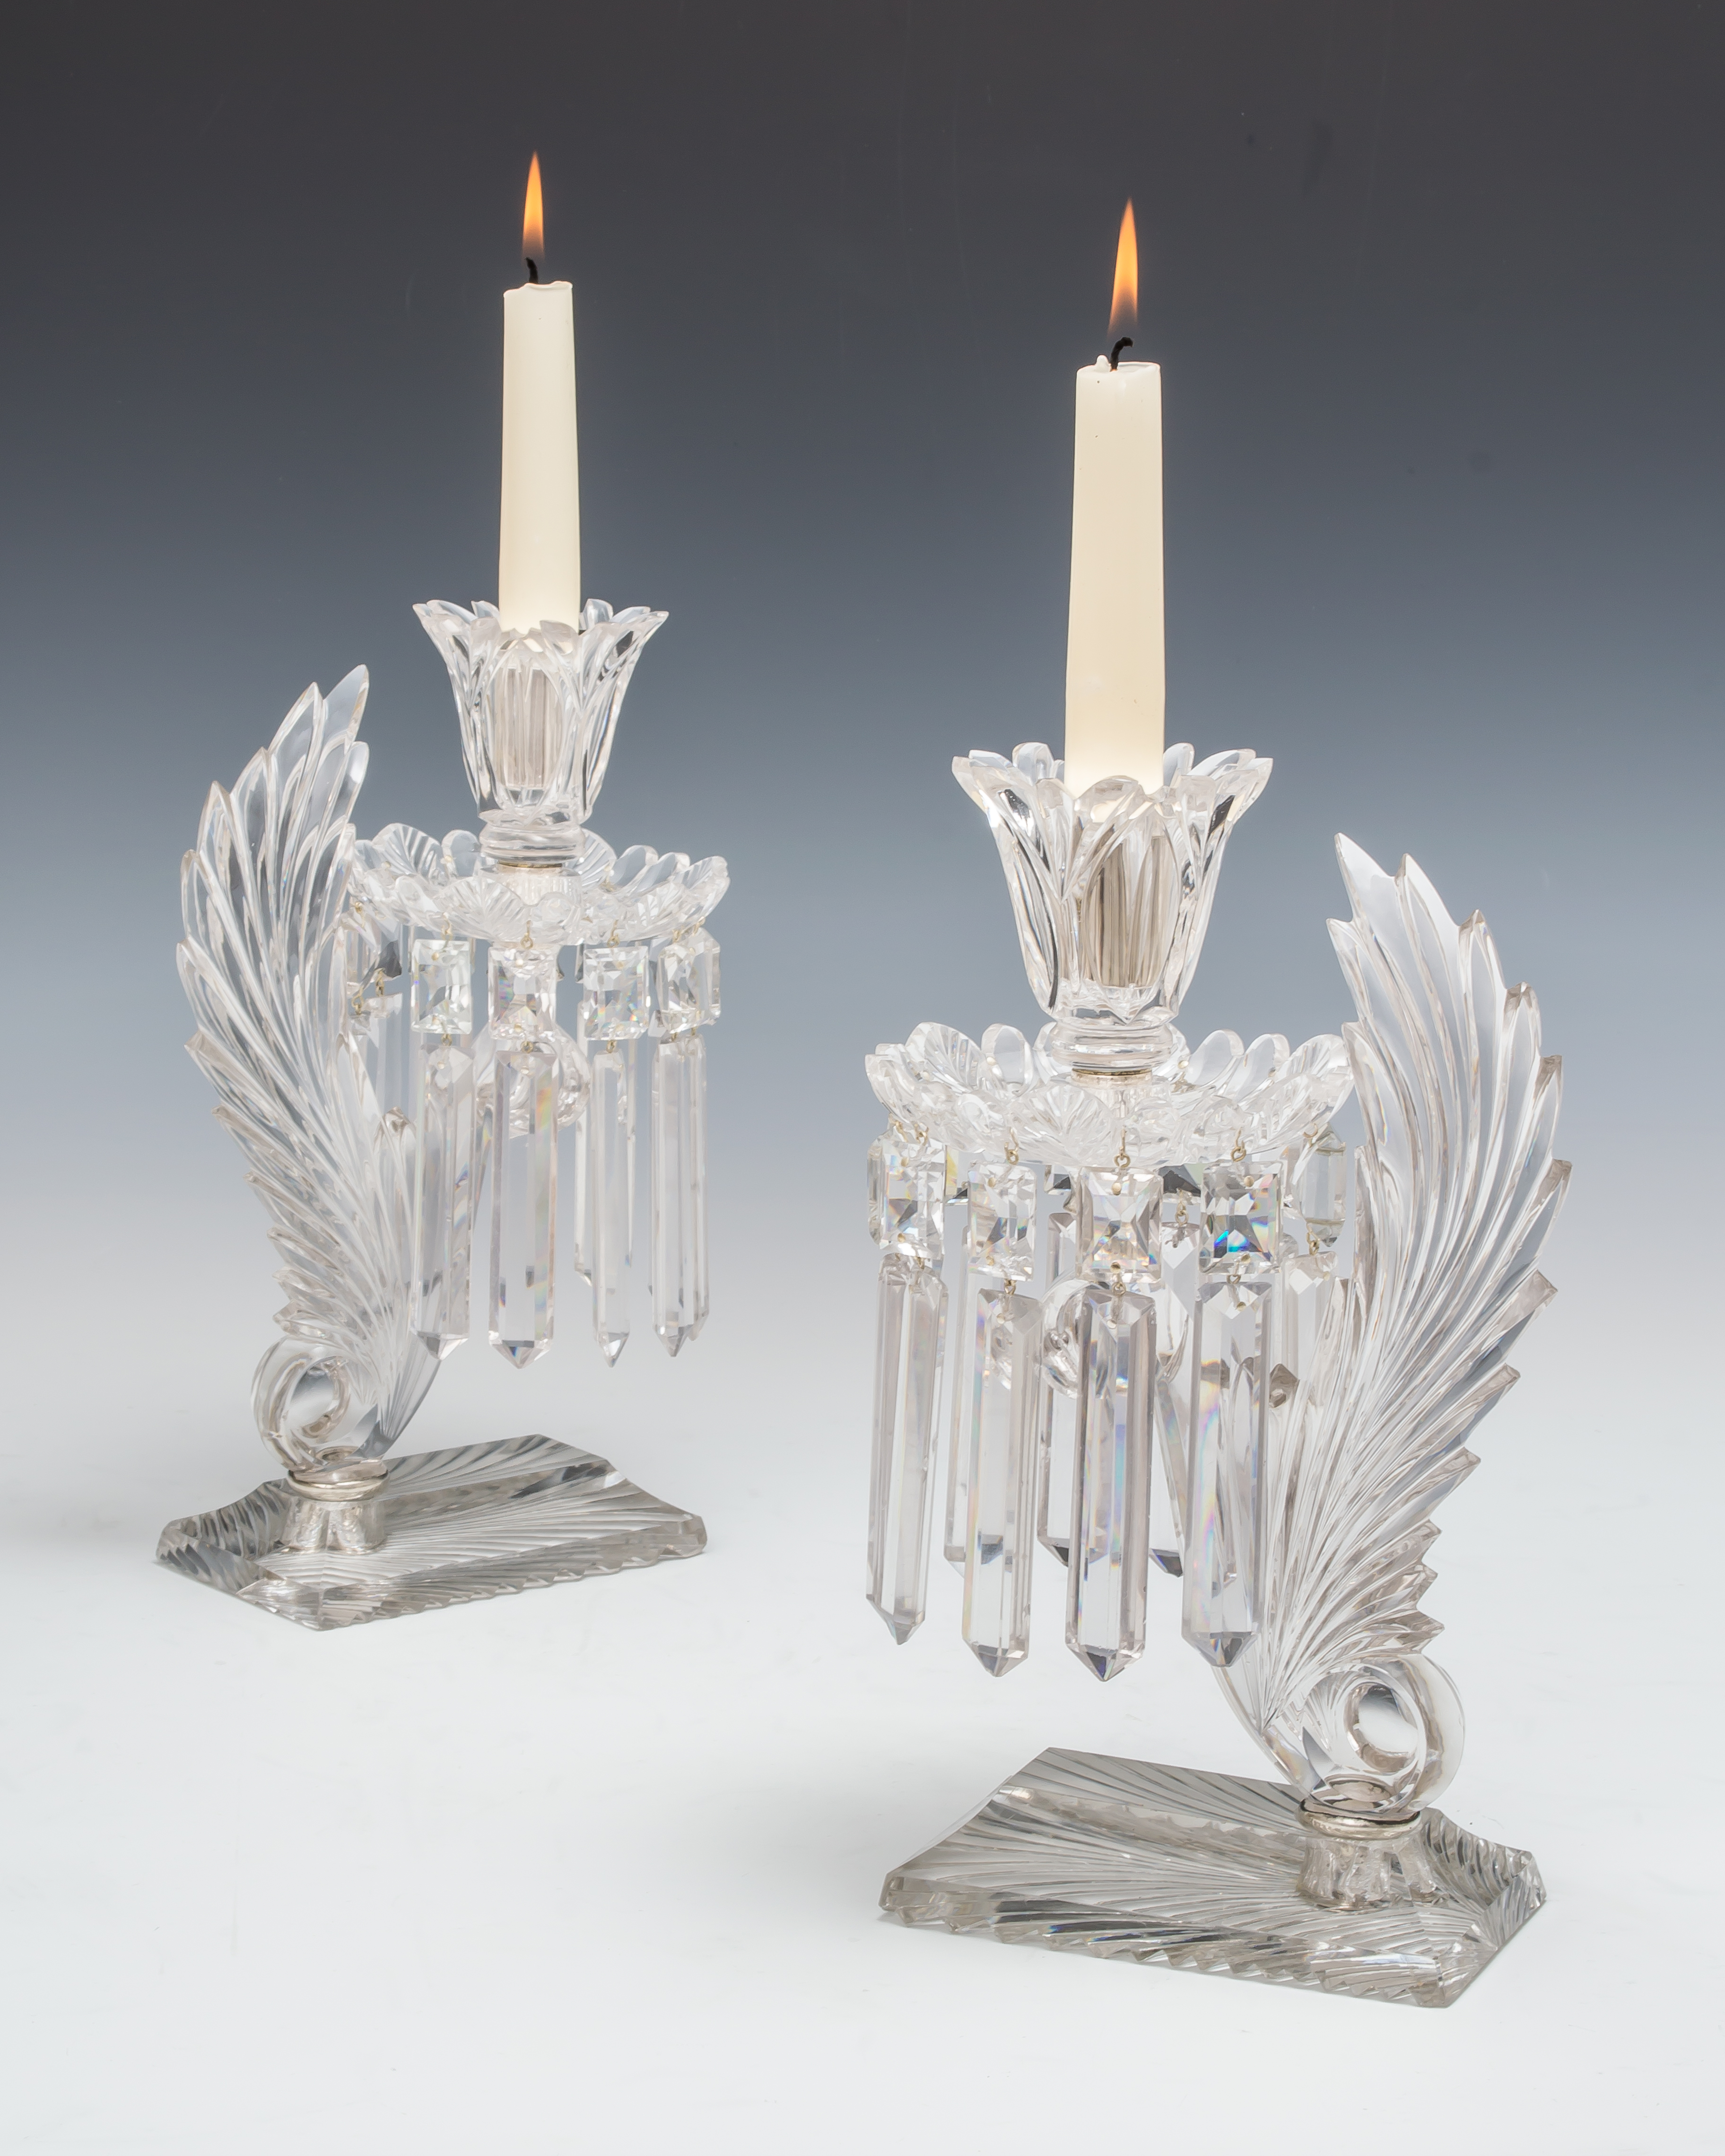 Fileman Antiques : Pair of cut glass and silver mounted candlesticks by F&C Osler, English, £2,800.